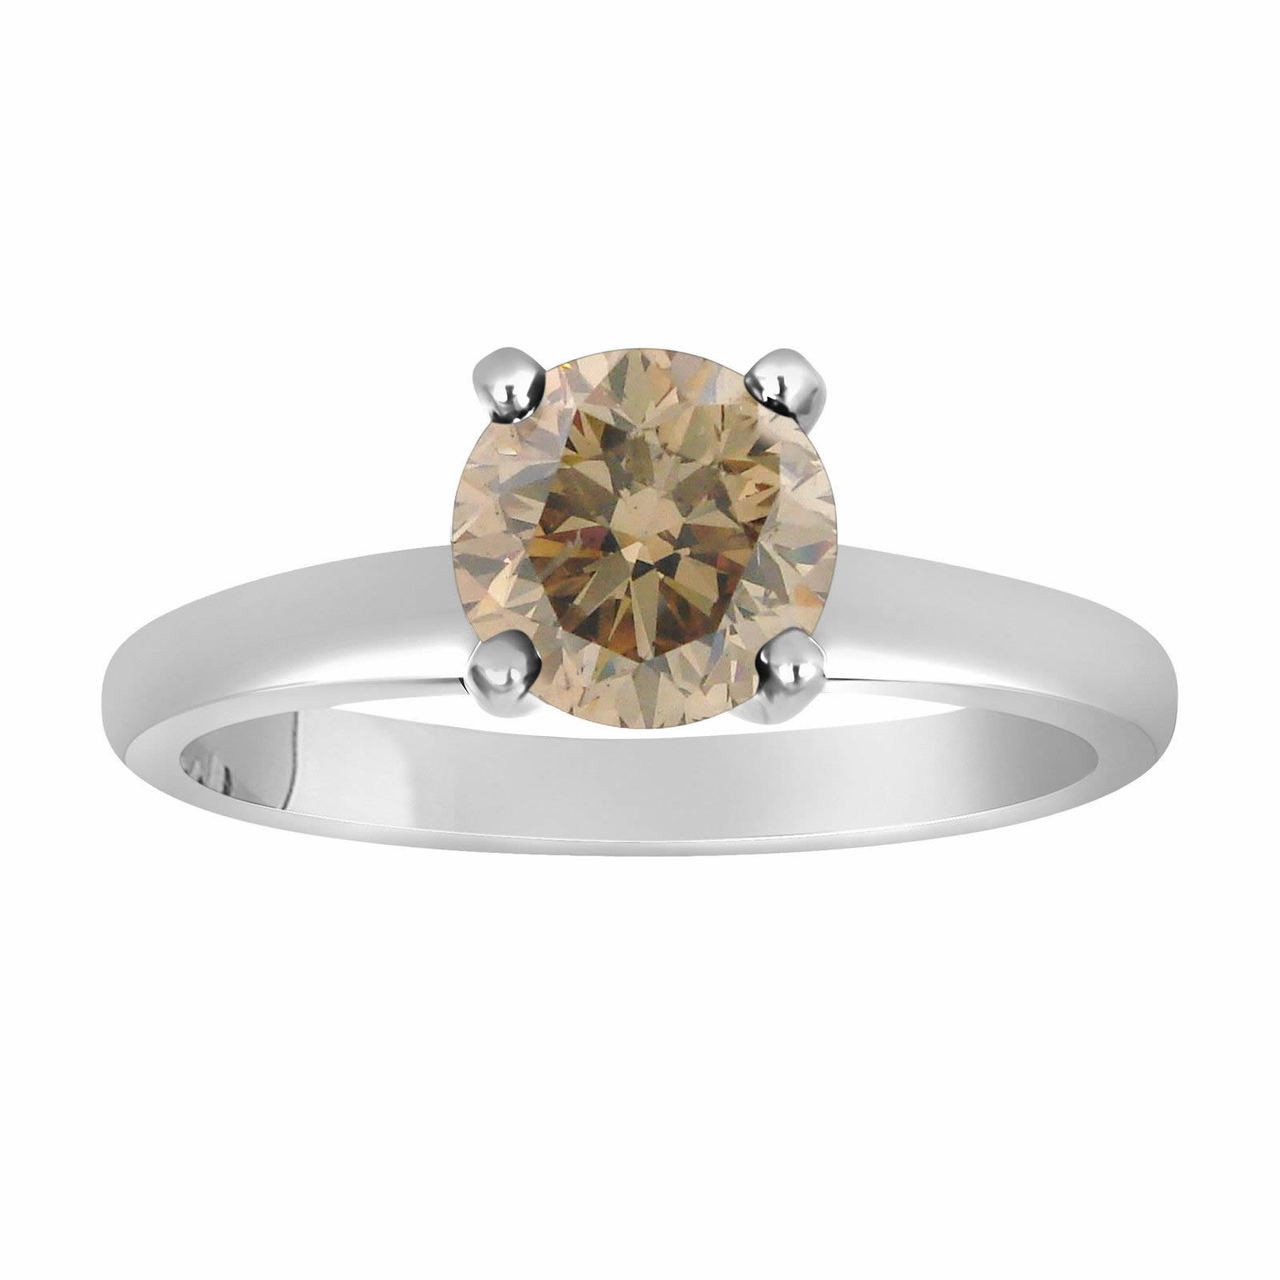 df86ee4057b4c Natural Champagne Brown Diamond Solitaire Engagement Ring 0.60 Carat  Certified 14K White Gold